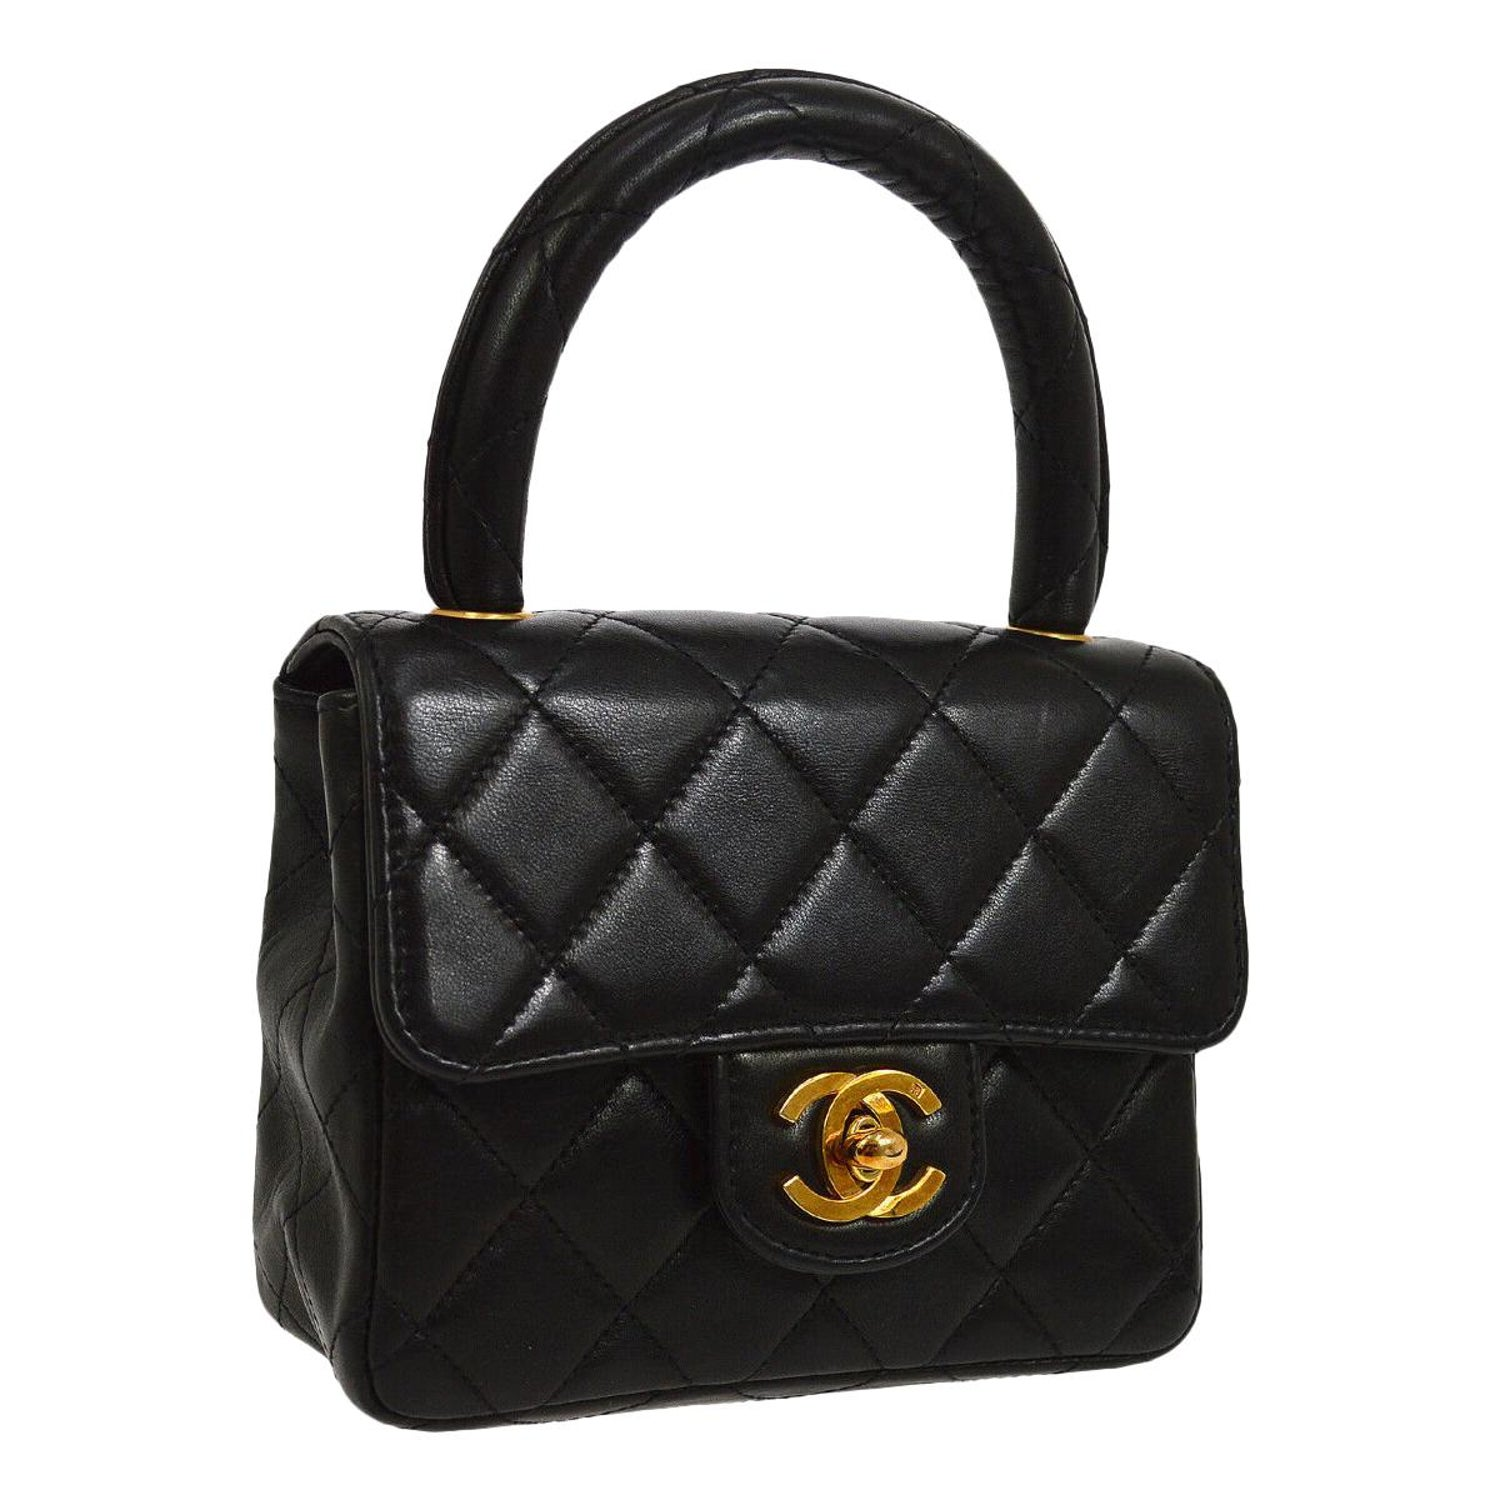 1aebb7f6db7c Chanel Black Leather Lambskin Small Party Evening Top Handle Satchel Flap  Bag at 1stdibs